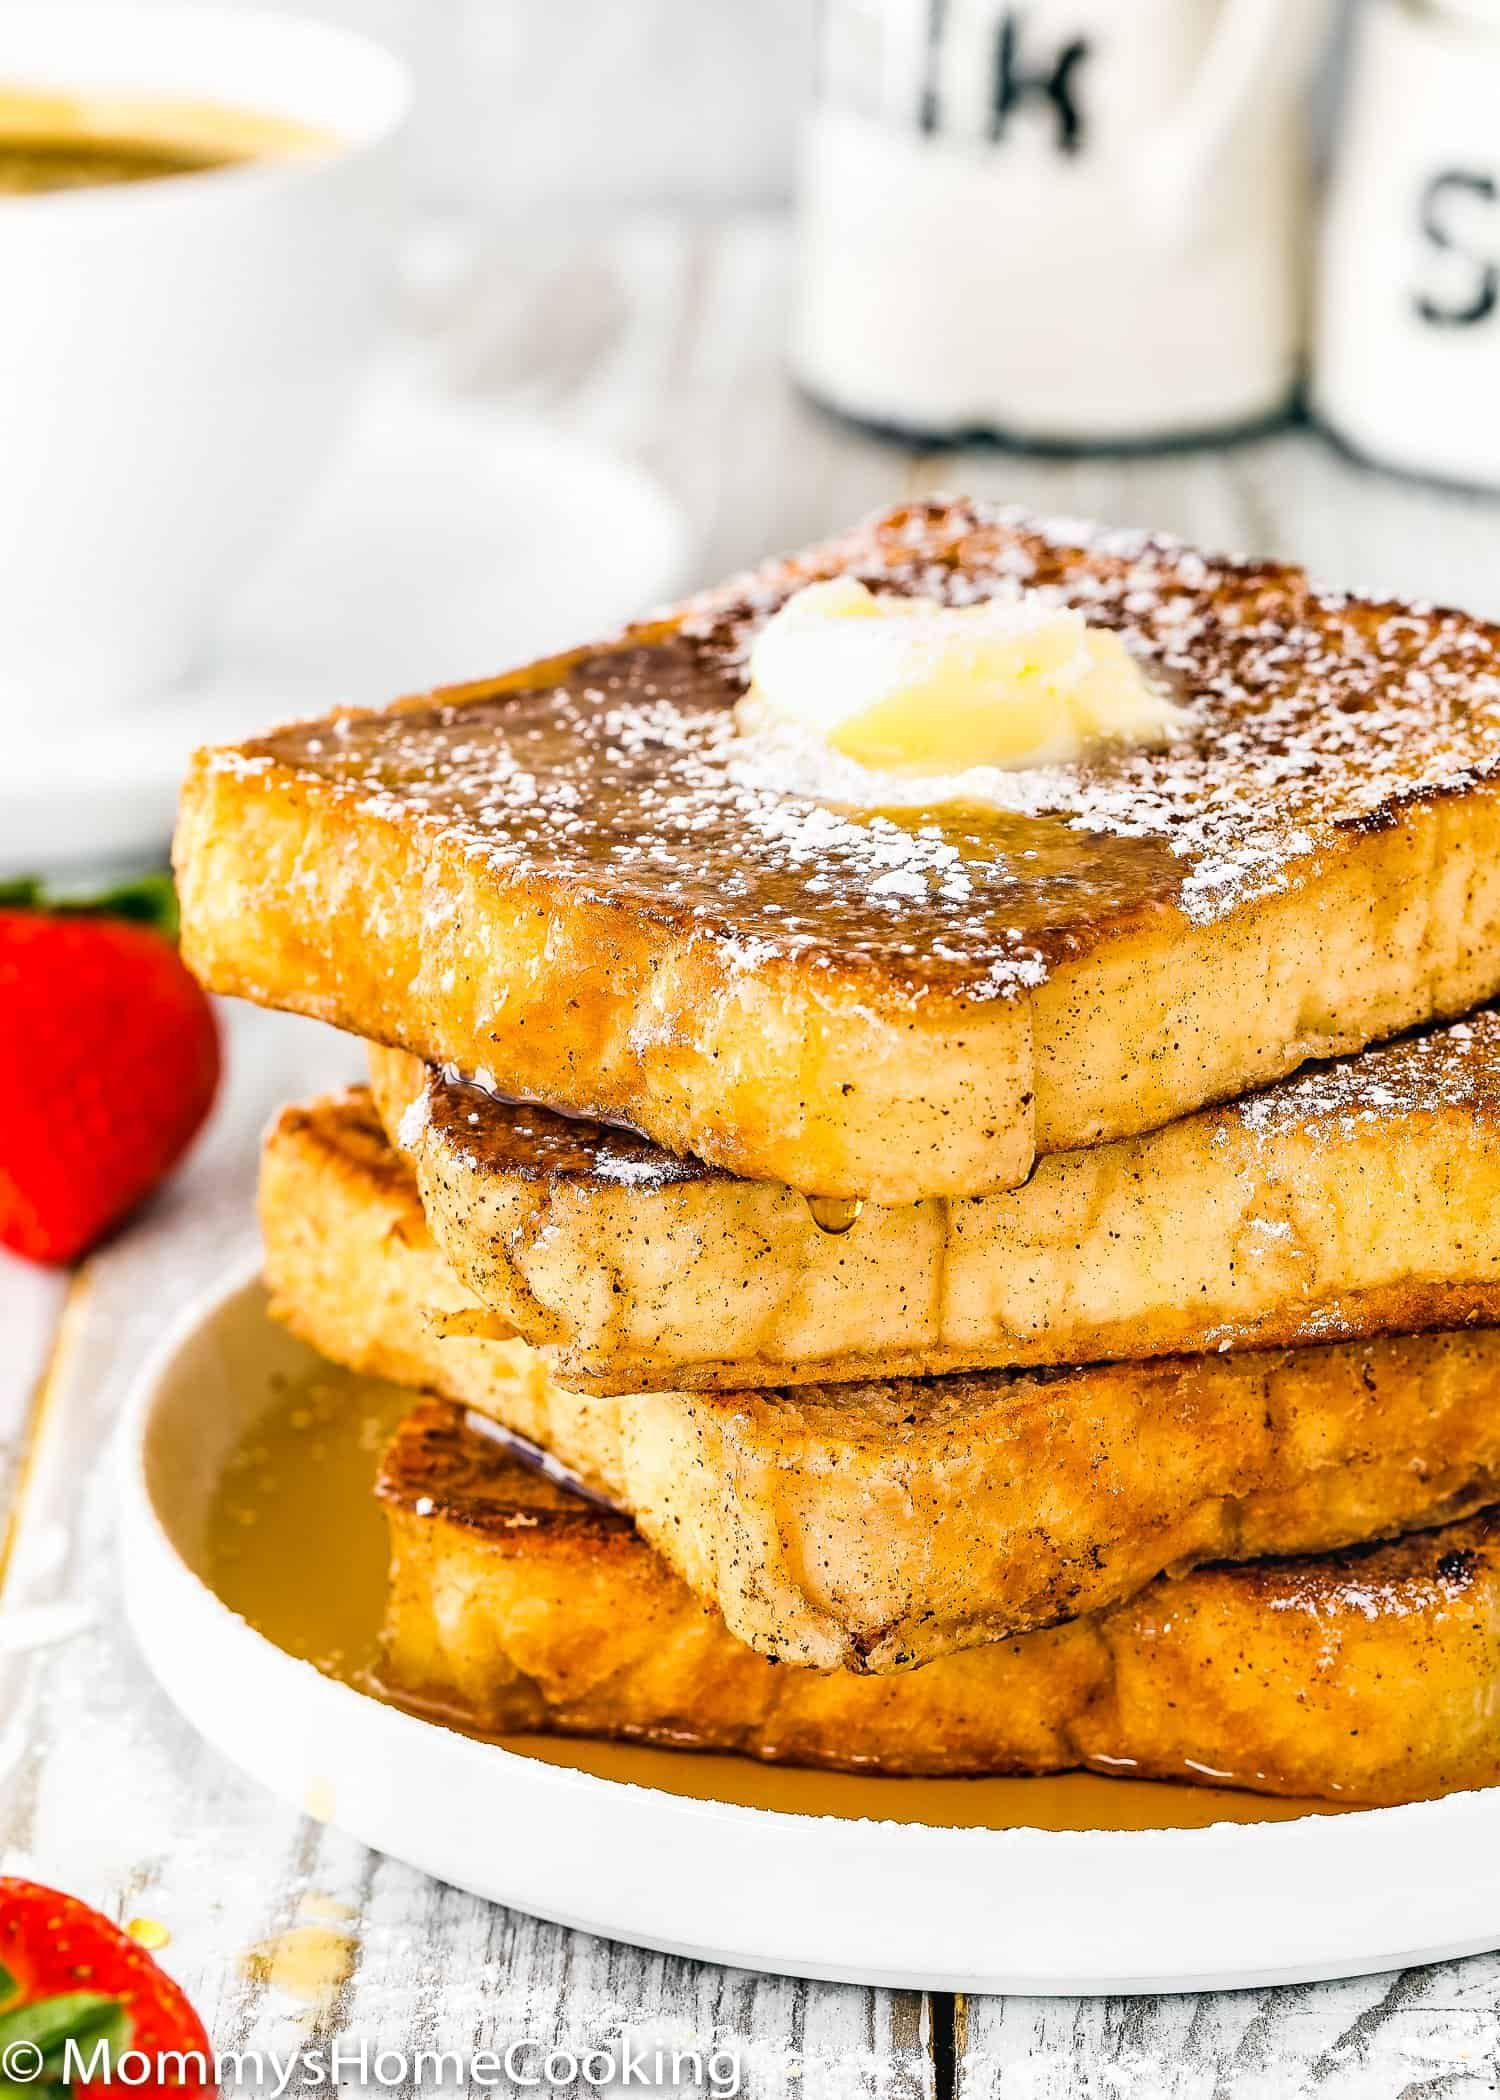 how to make french toast without eggs video